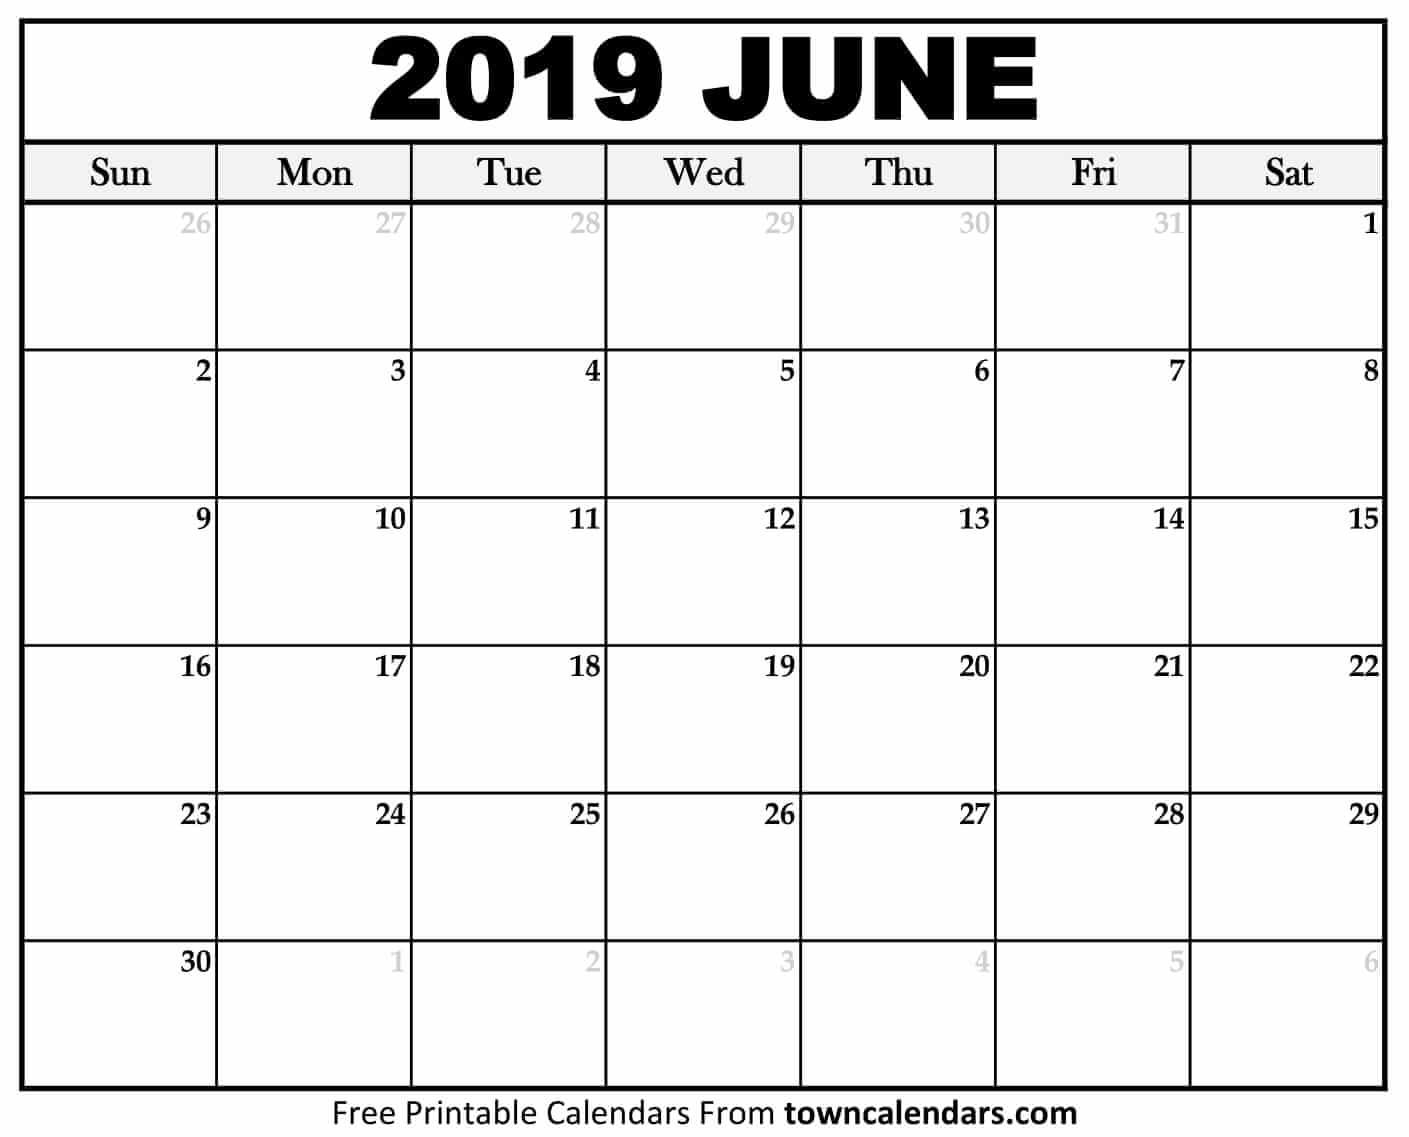 Printable June 2019 Calendar - Towncalendars Calendar Of 2019 June